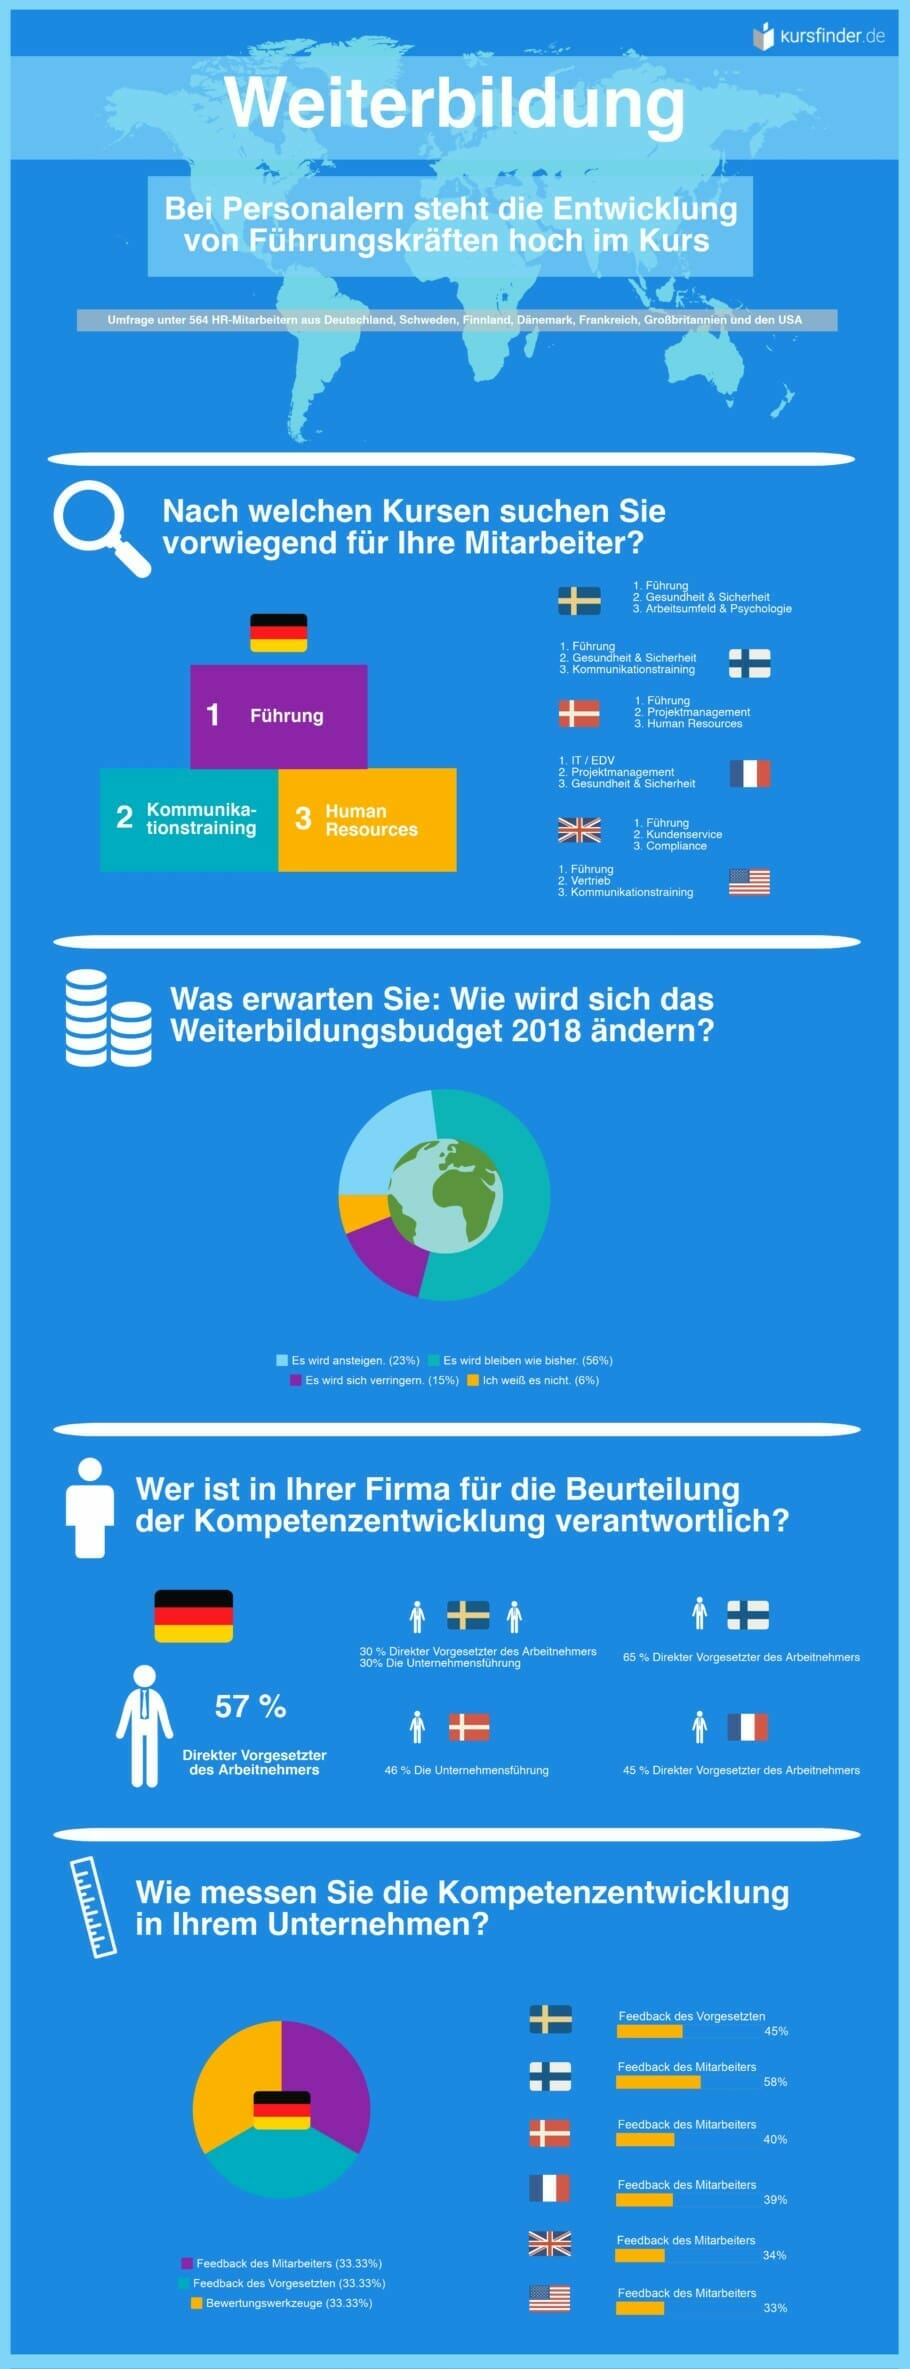 Infographic HR survey kursfinder.de